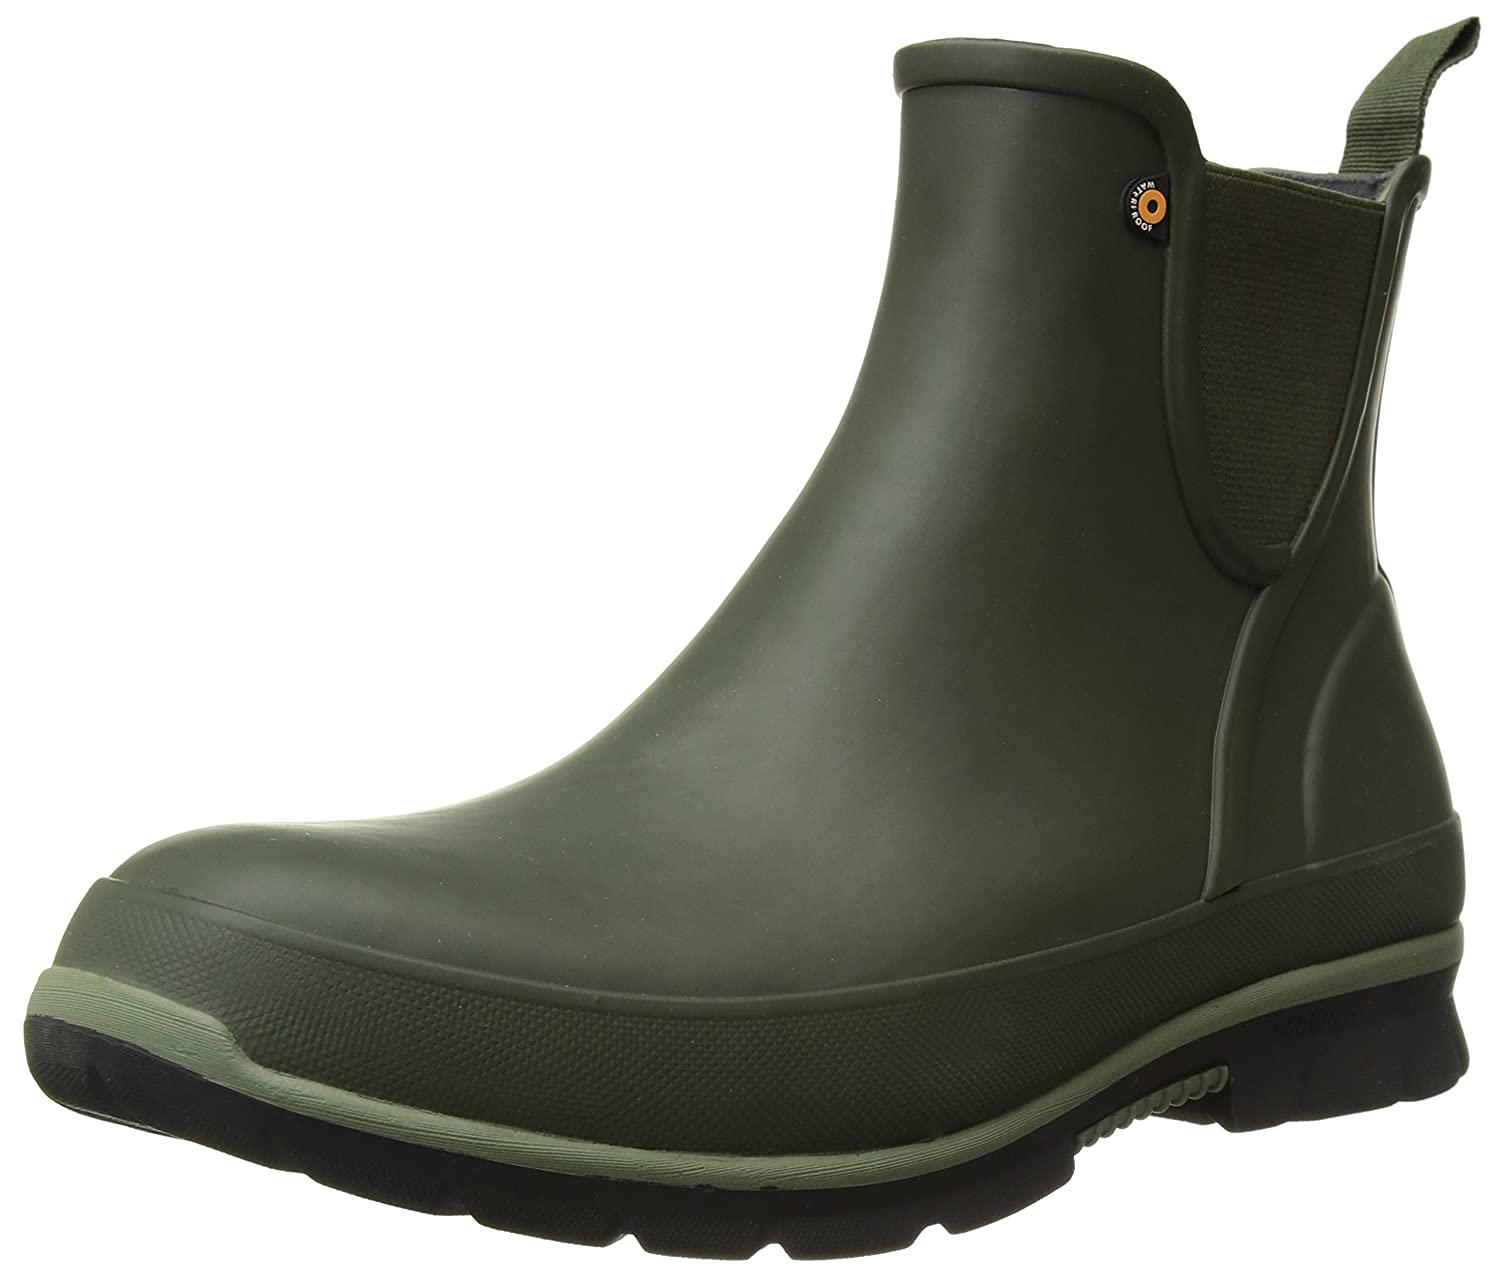 Bogs Women's Amanda Slip on Solid Rain Boot B073PJFLY9 11 B(M) US|Dark Green